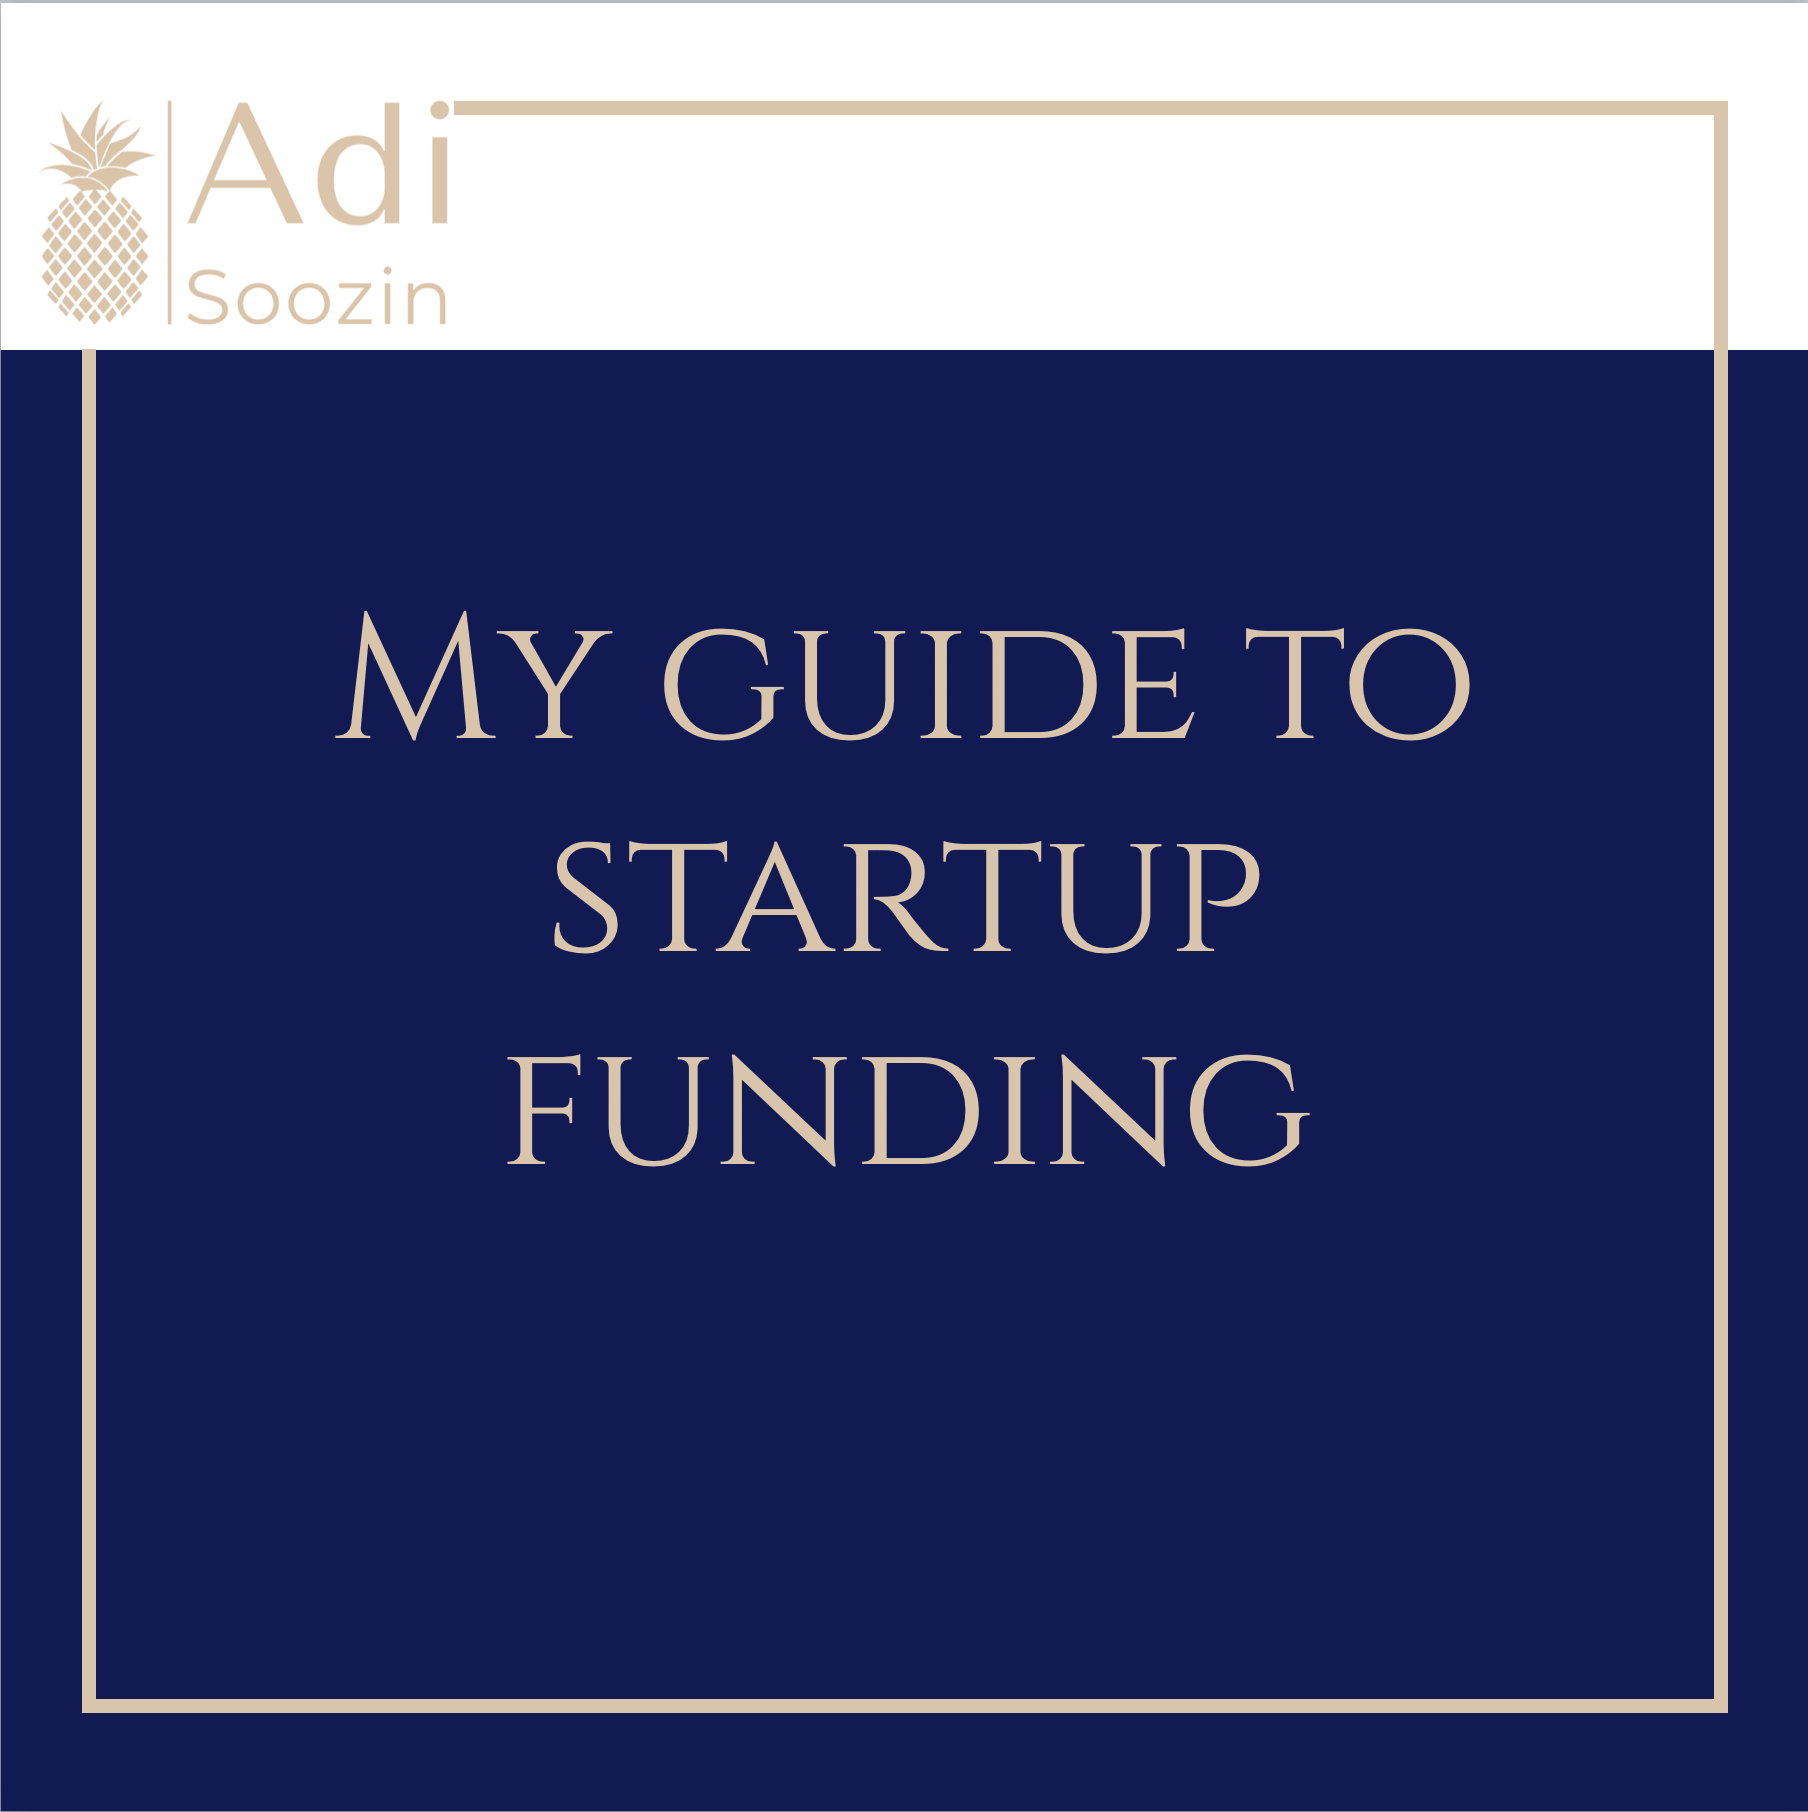 Draft Version 3: My Guide To Startup Funding